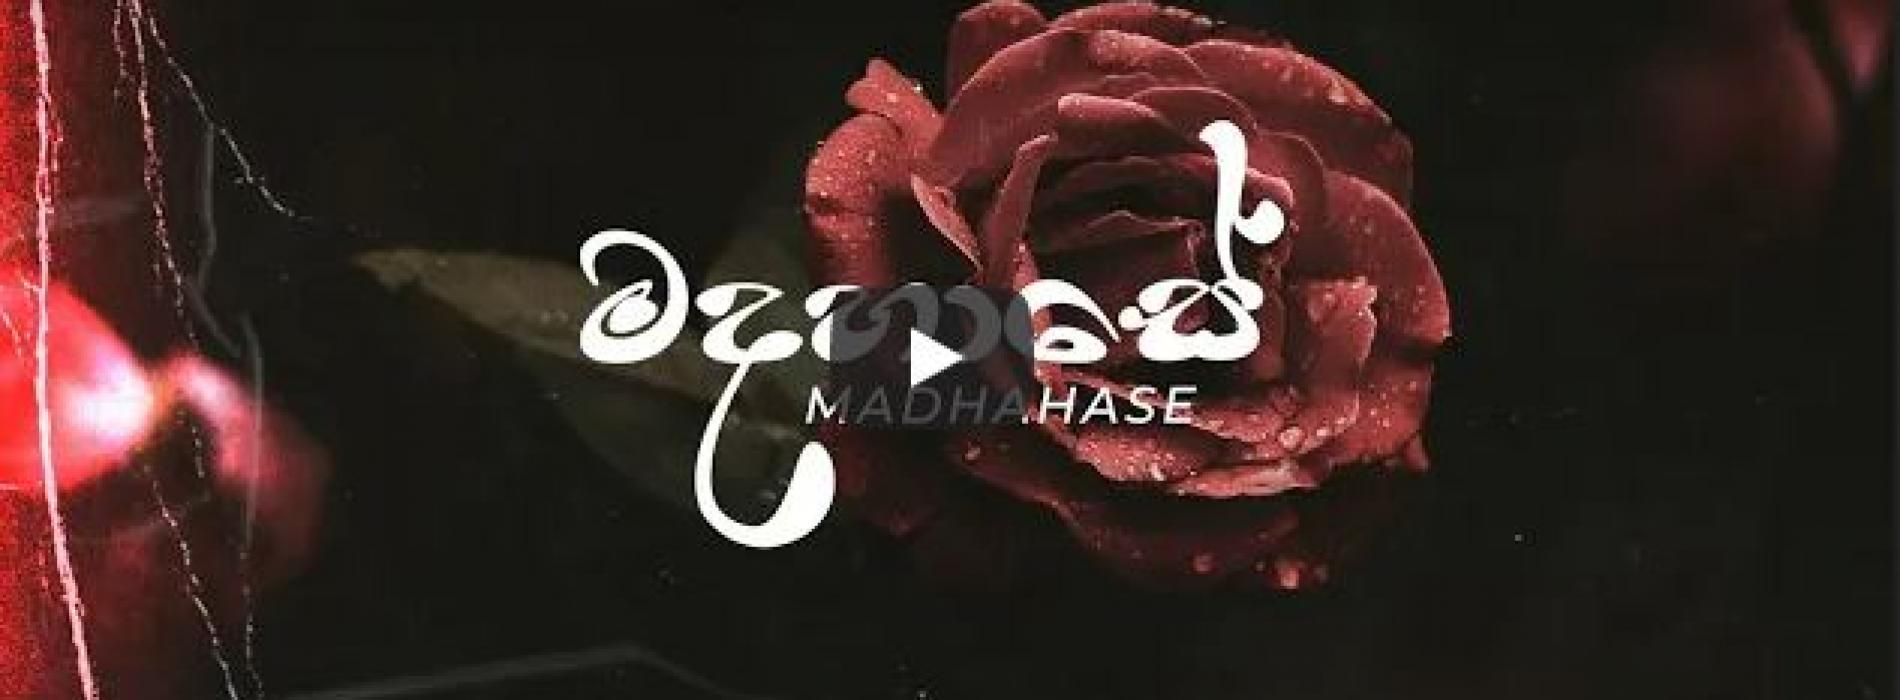 New Music : Madhahase – J!NNA & Jizzy (Official Lyric Video)